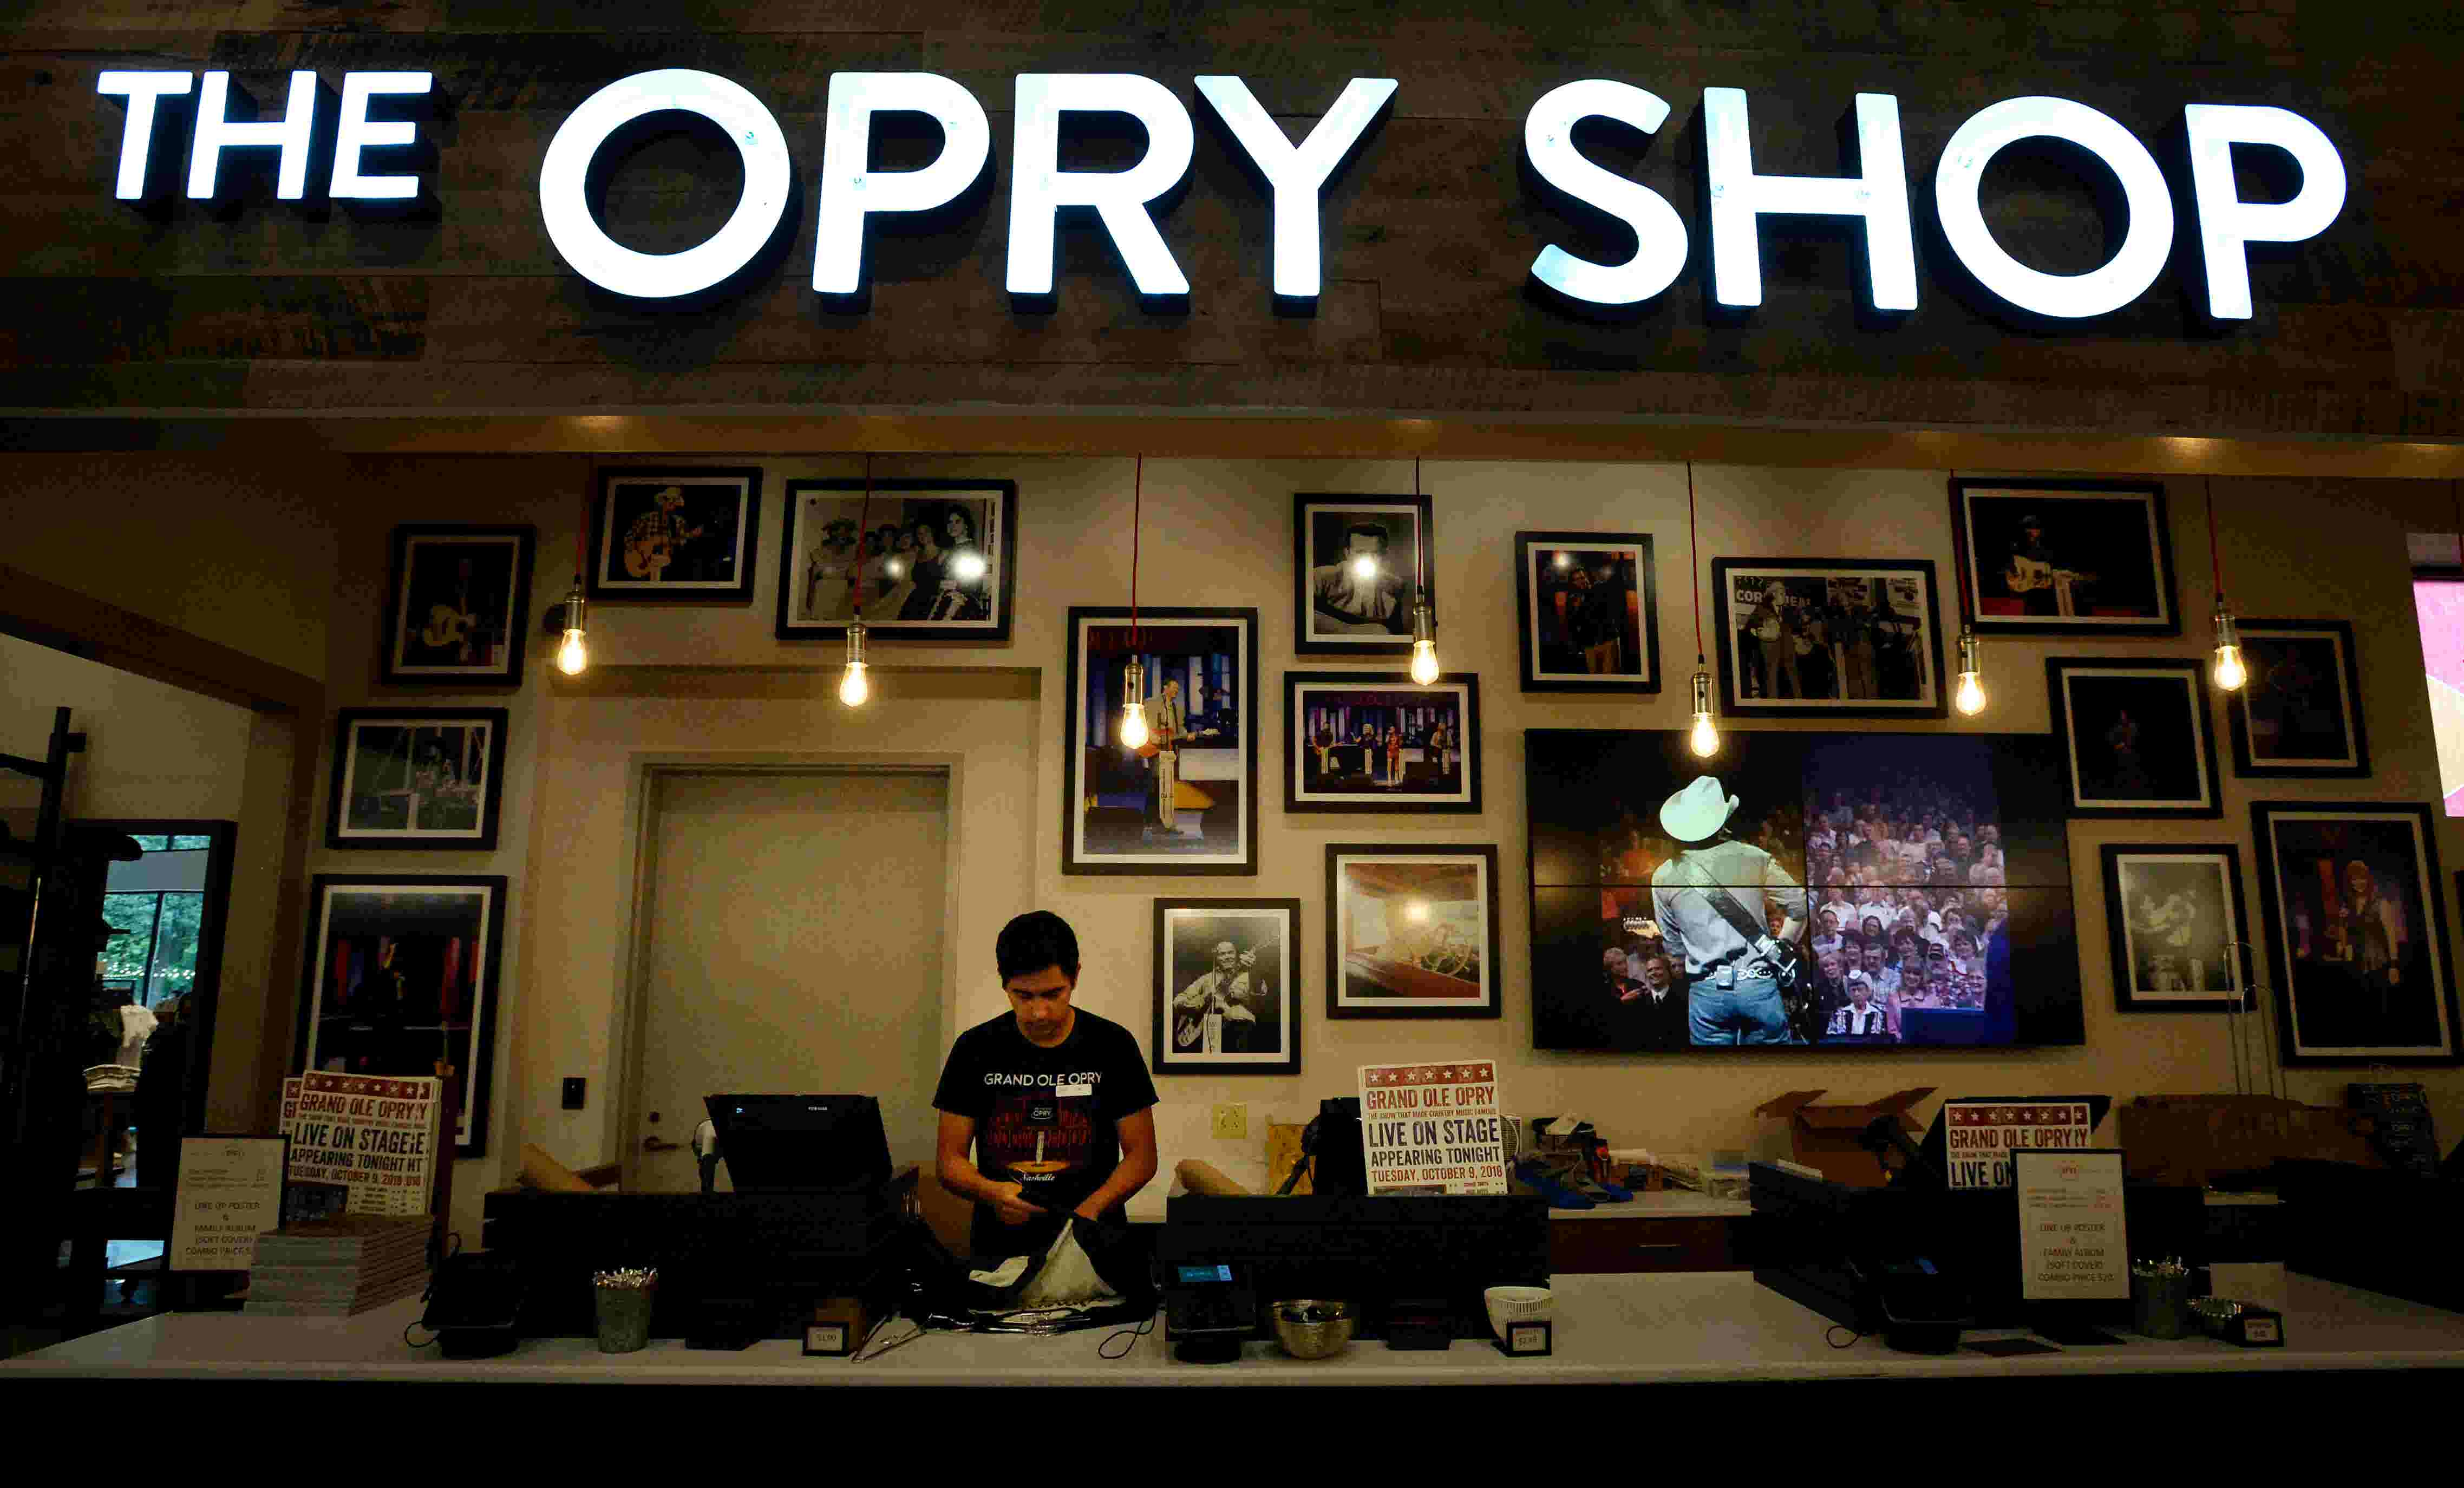 nashville's grand ole opry gets $12m expansion with new parking, retail